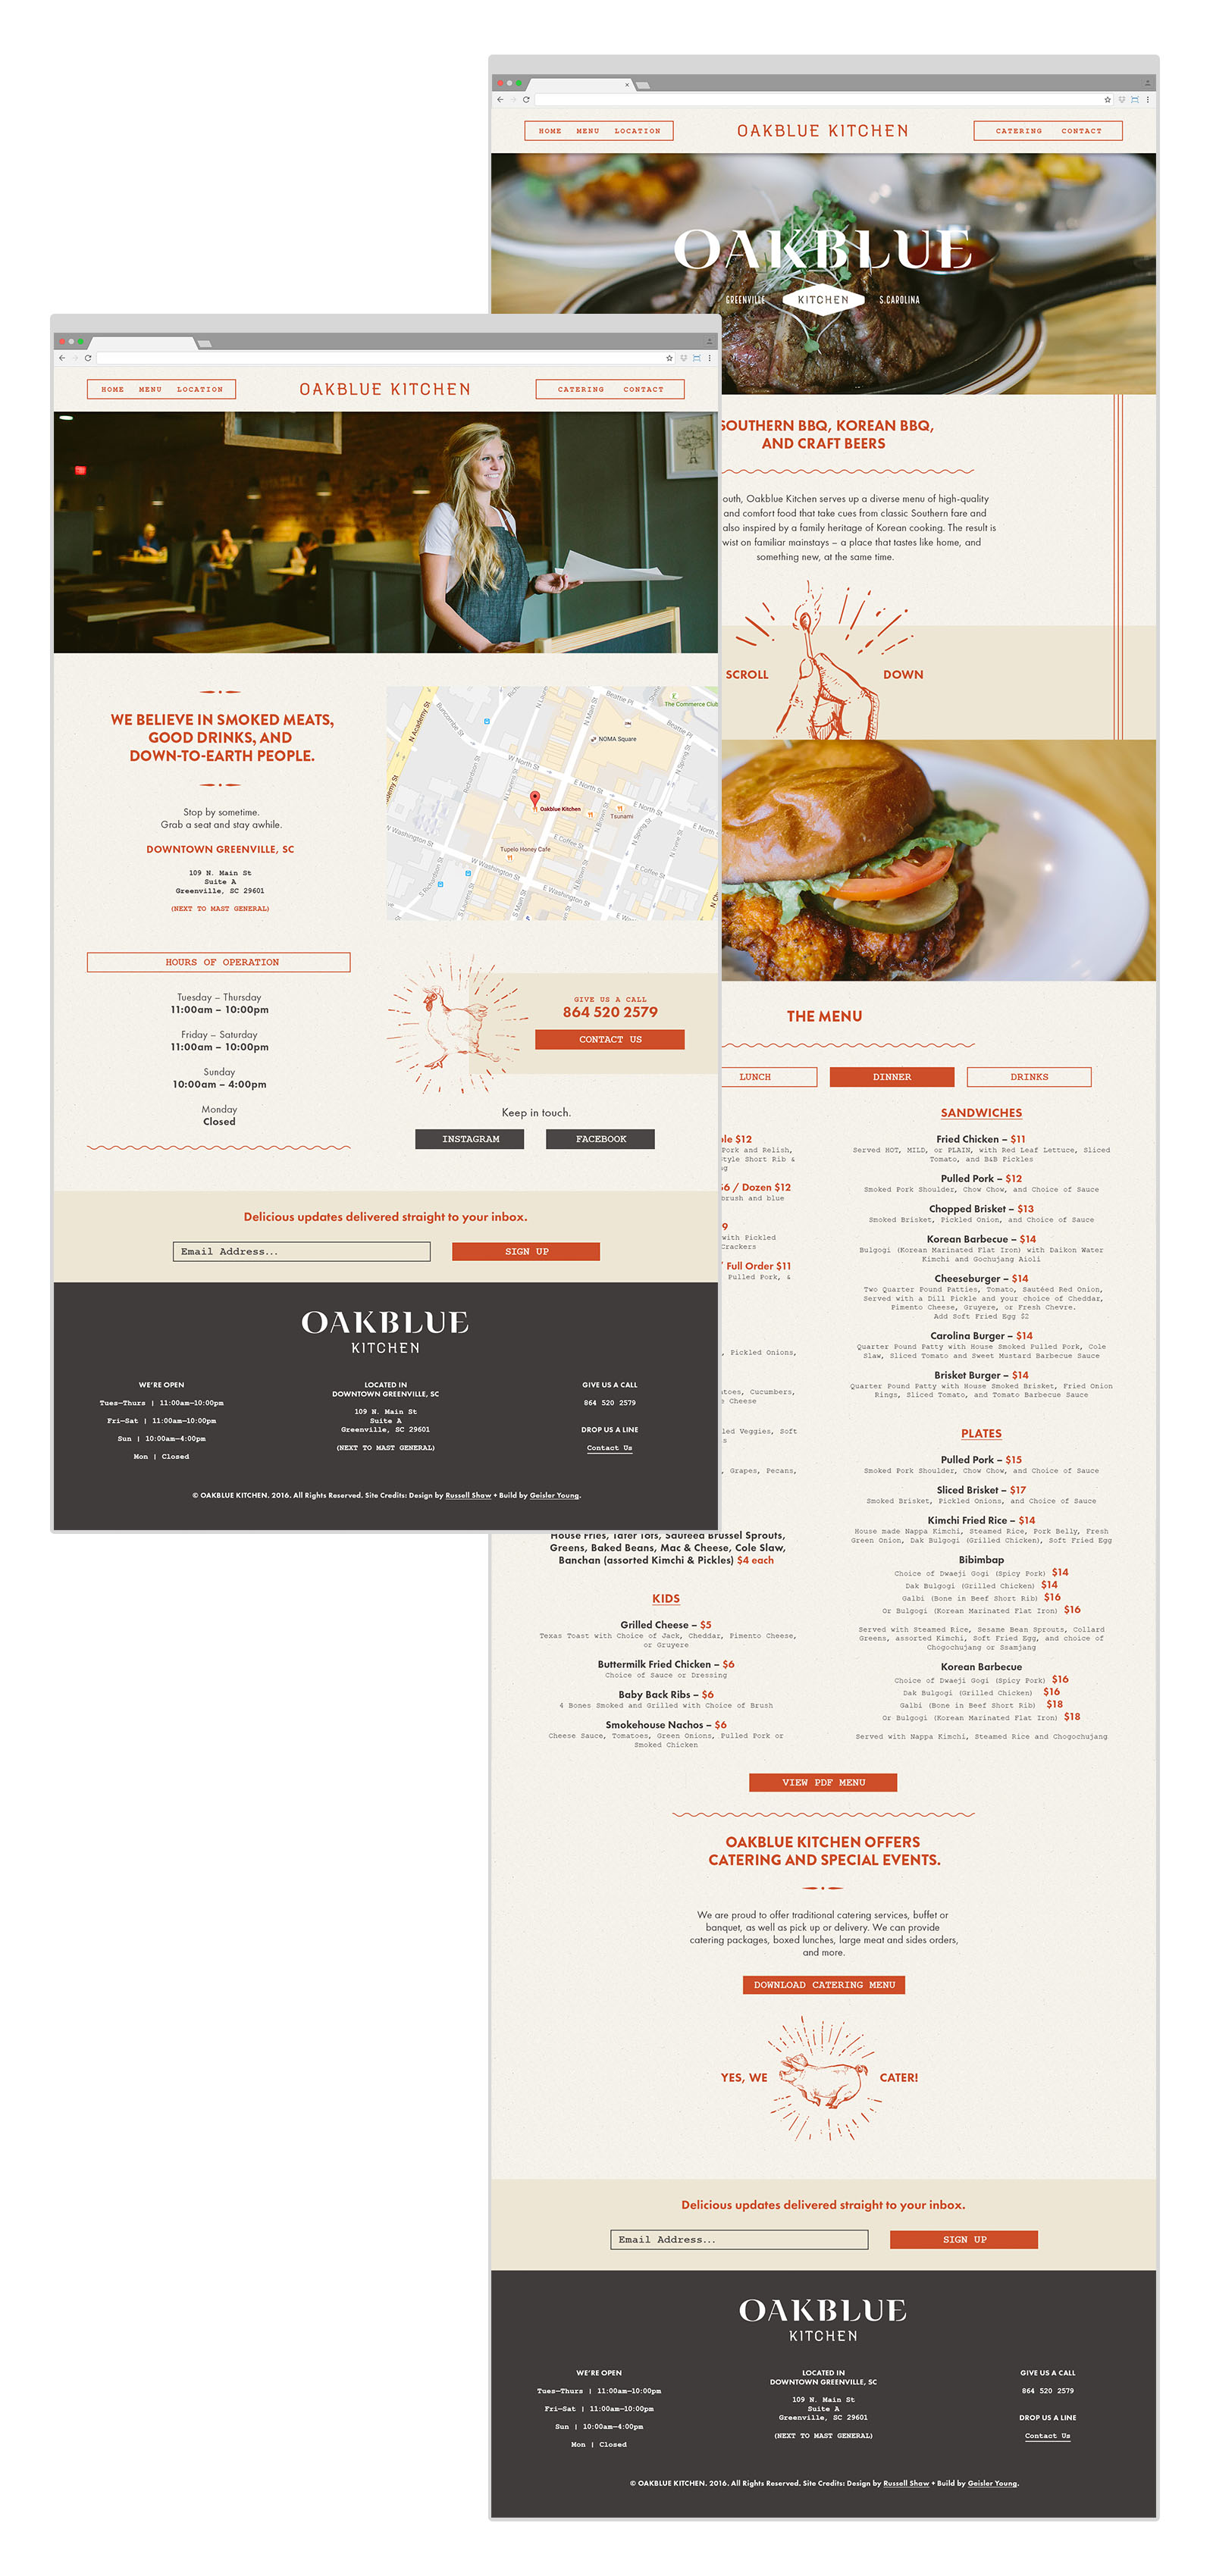 Full web site page design mockups for the Oakblue Kitchen website with the homepage, location of restaurant and the menu, as part of the brand design and visual identity package for the bbq joint by Russell Shaw.